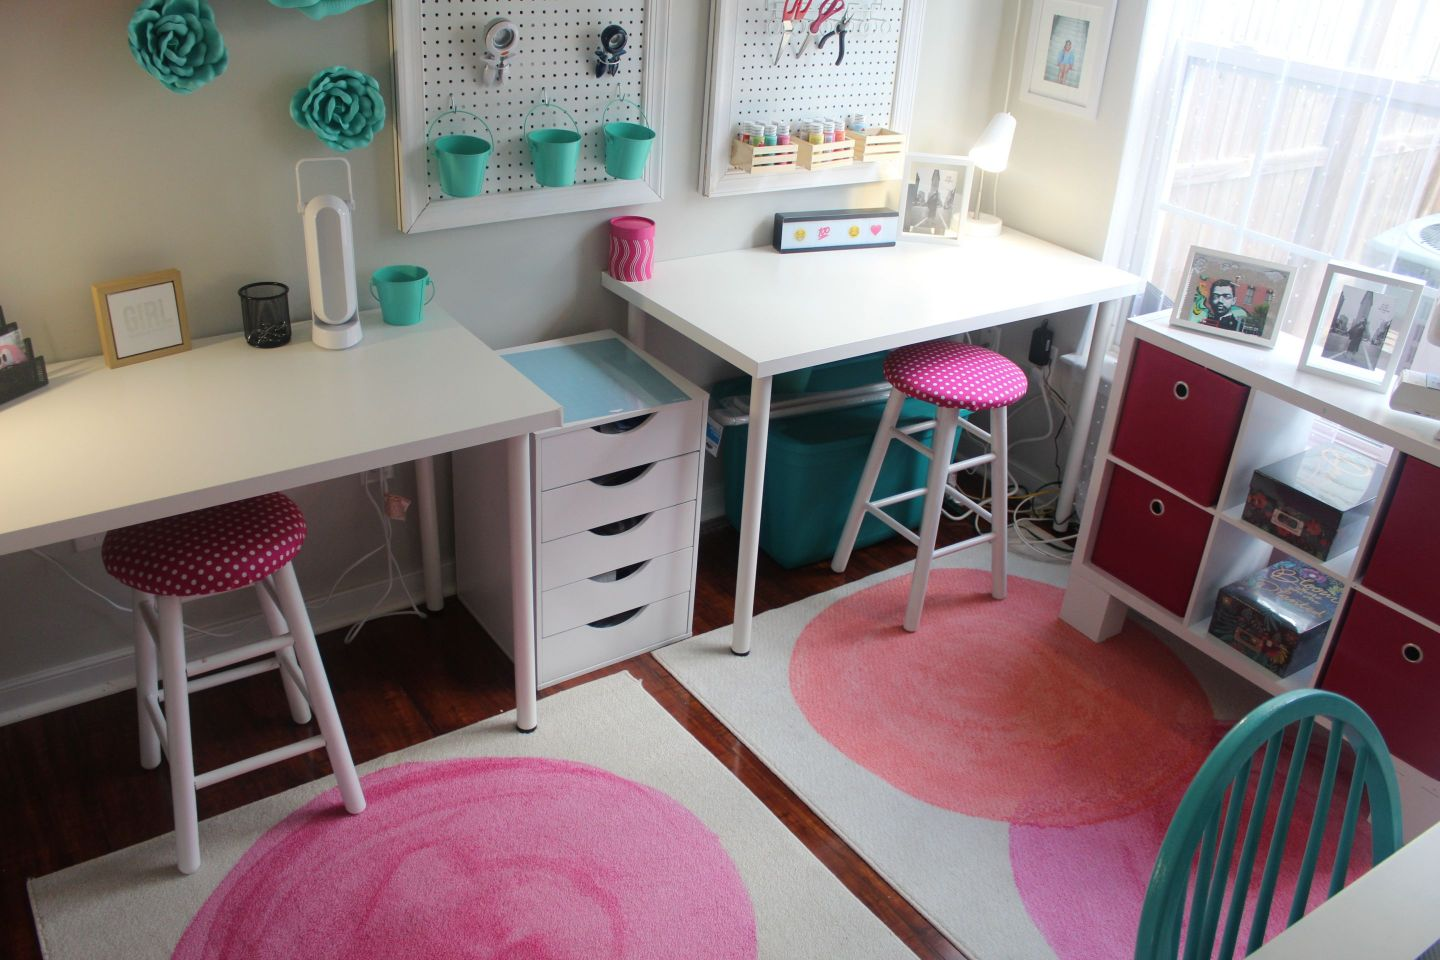 20180929023140_IMG_0259 Tips for Designing a Craft Room from an Interior Designer